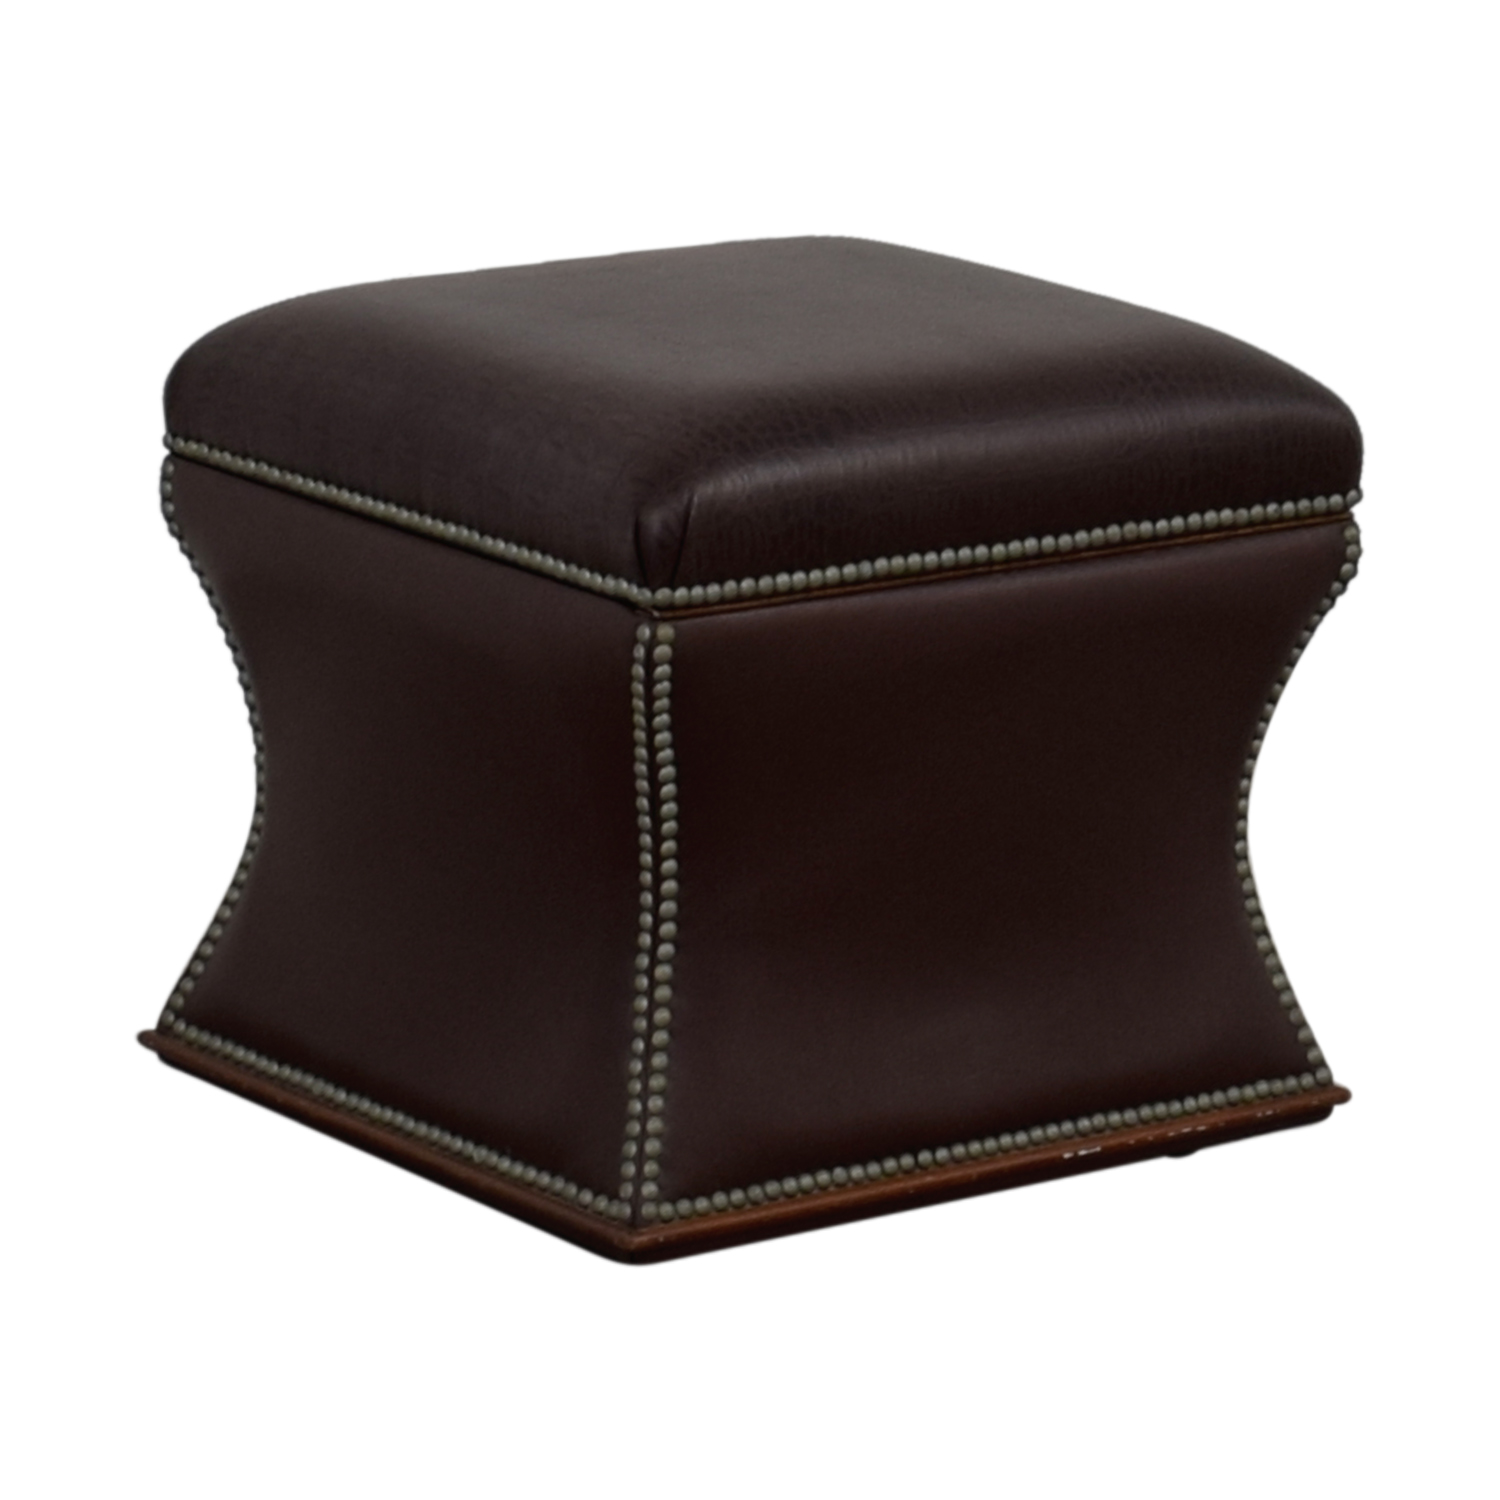 Miraculous 89 Off Ralph Lauren Home Ralph Lauren Nailhead Faux Crocodile Embossed Leather Storage Ottoman Chairs Ncnpc Chair Design For Home Ncnpcorg